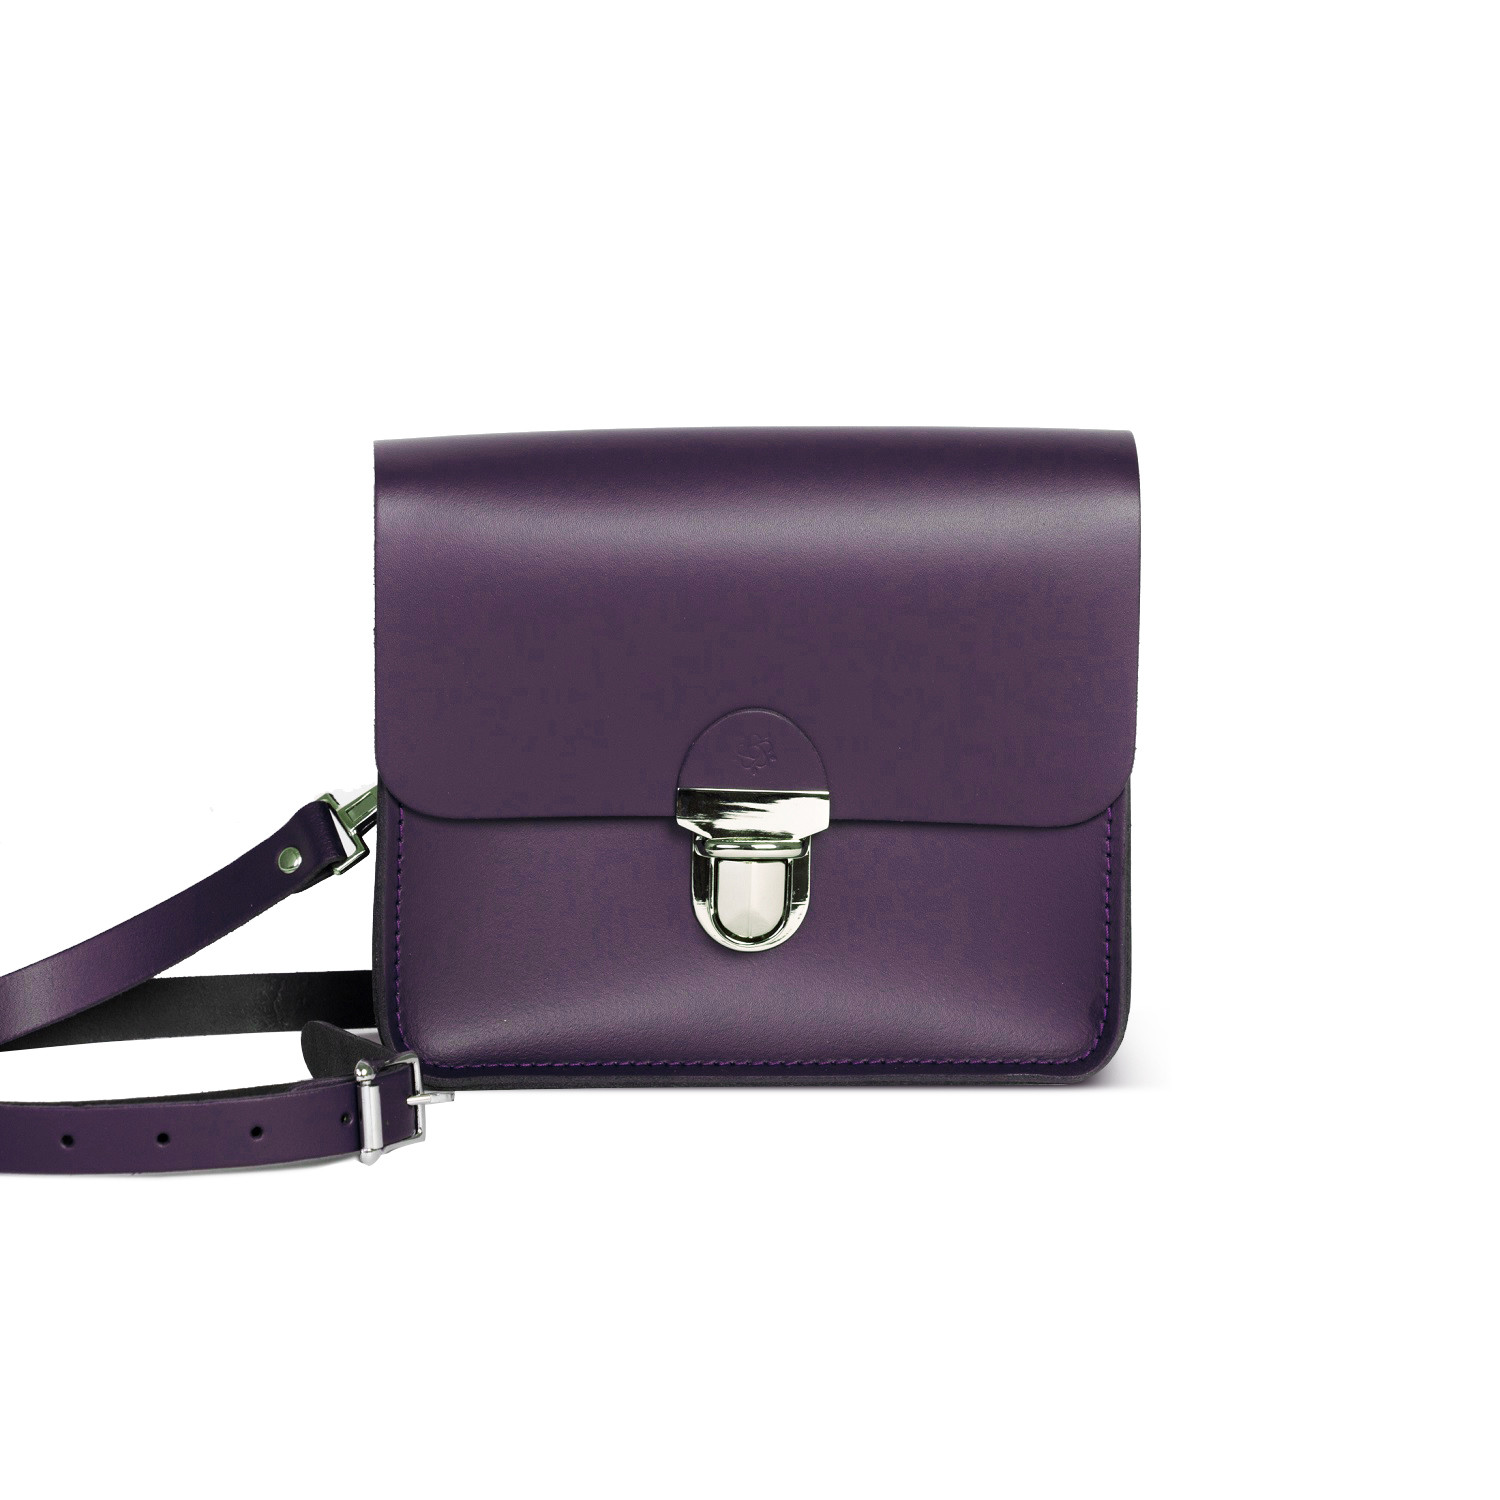 Sofia Premium Leather Crossbody Bag in Aubergine